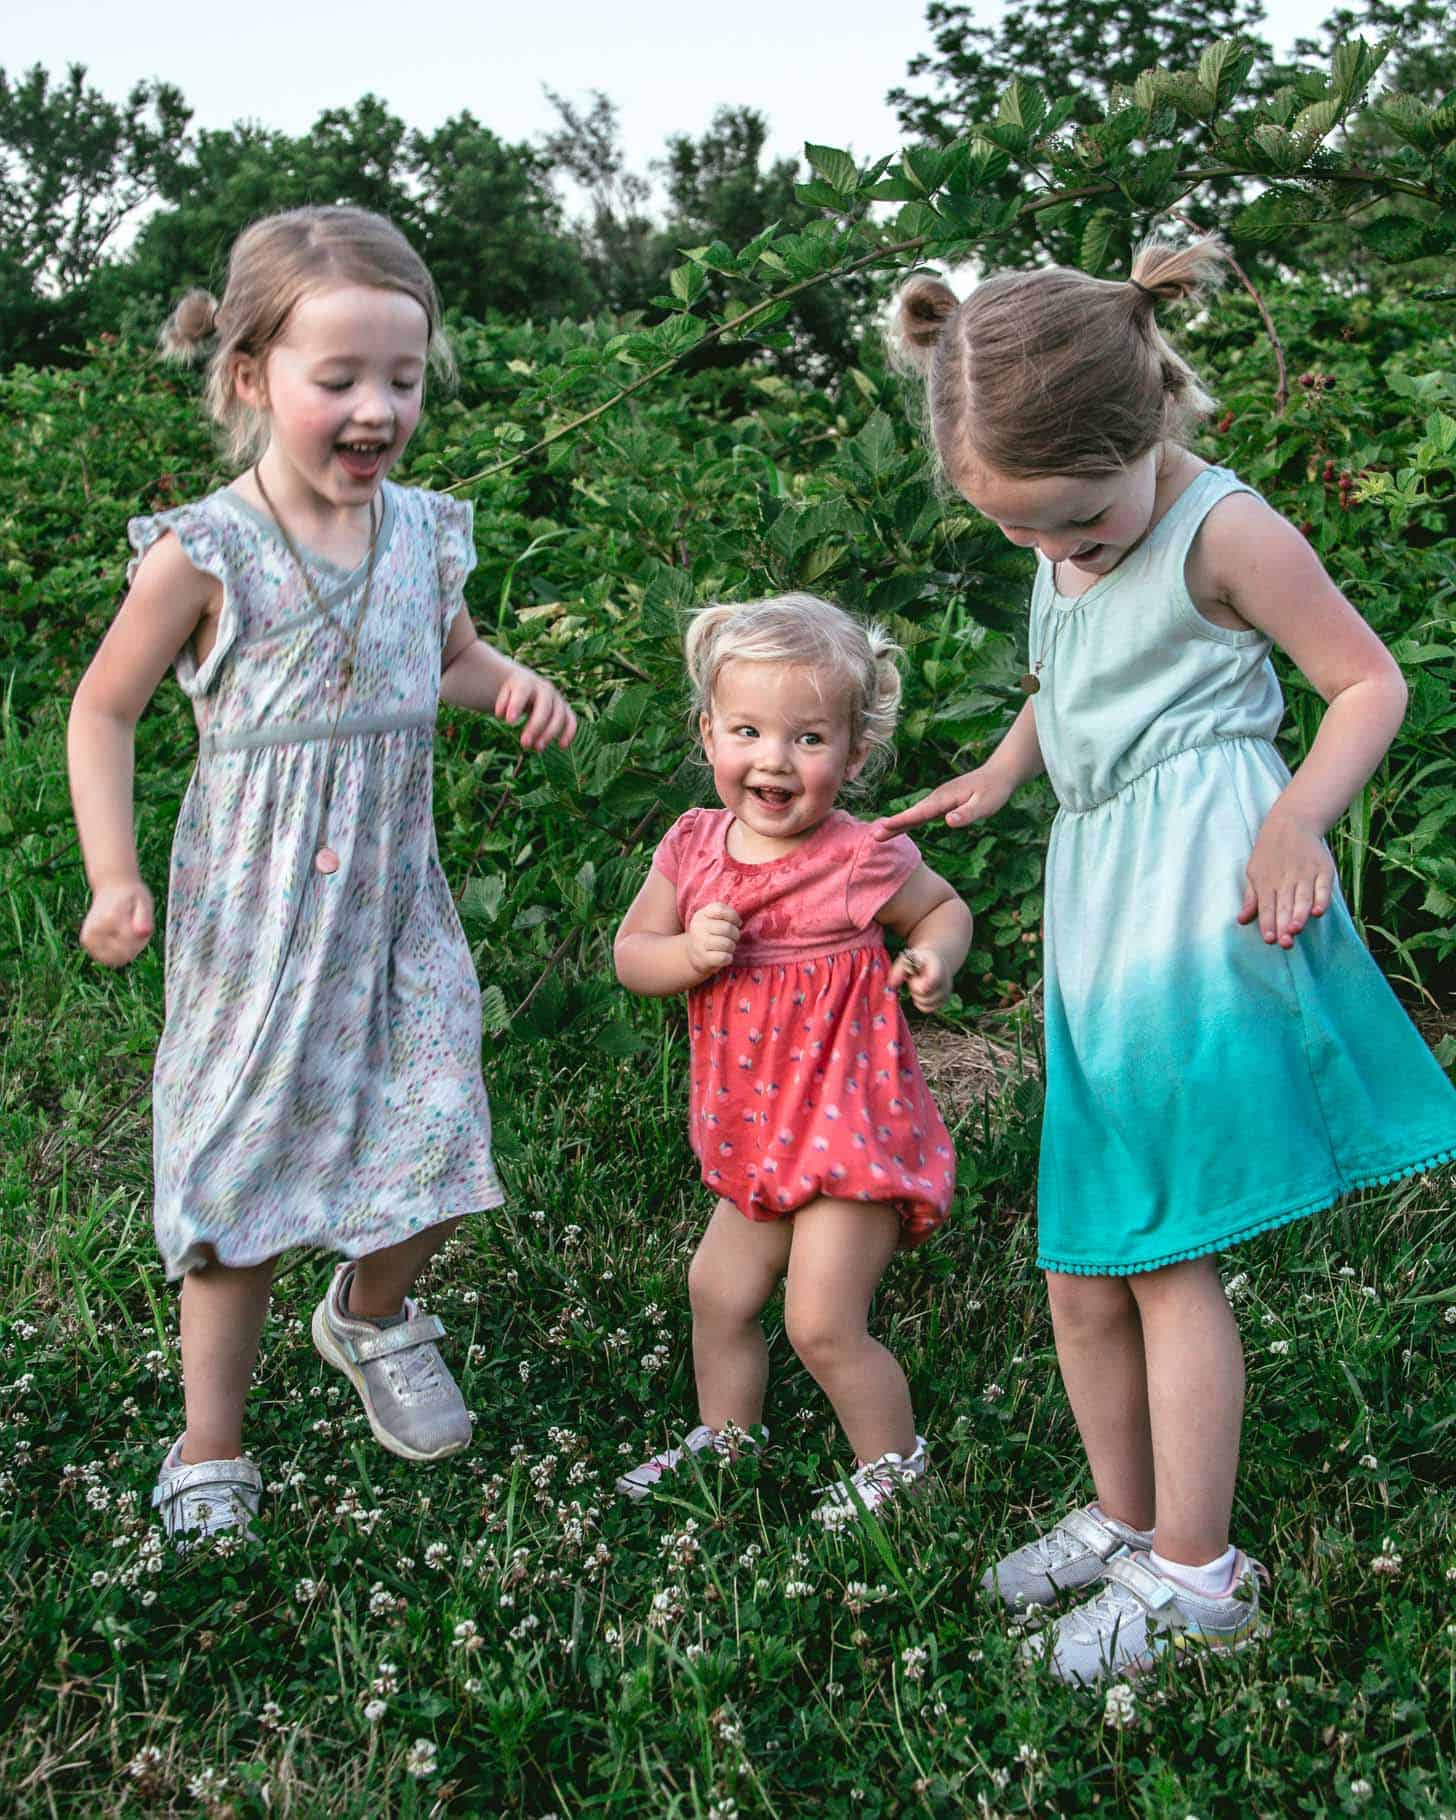 3 young girls dancing in the blackberry field